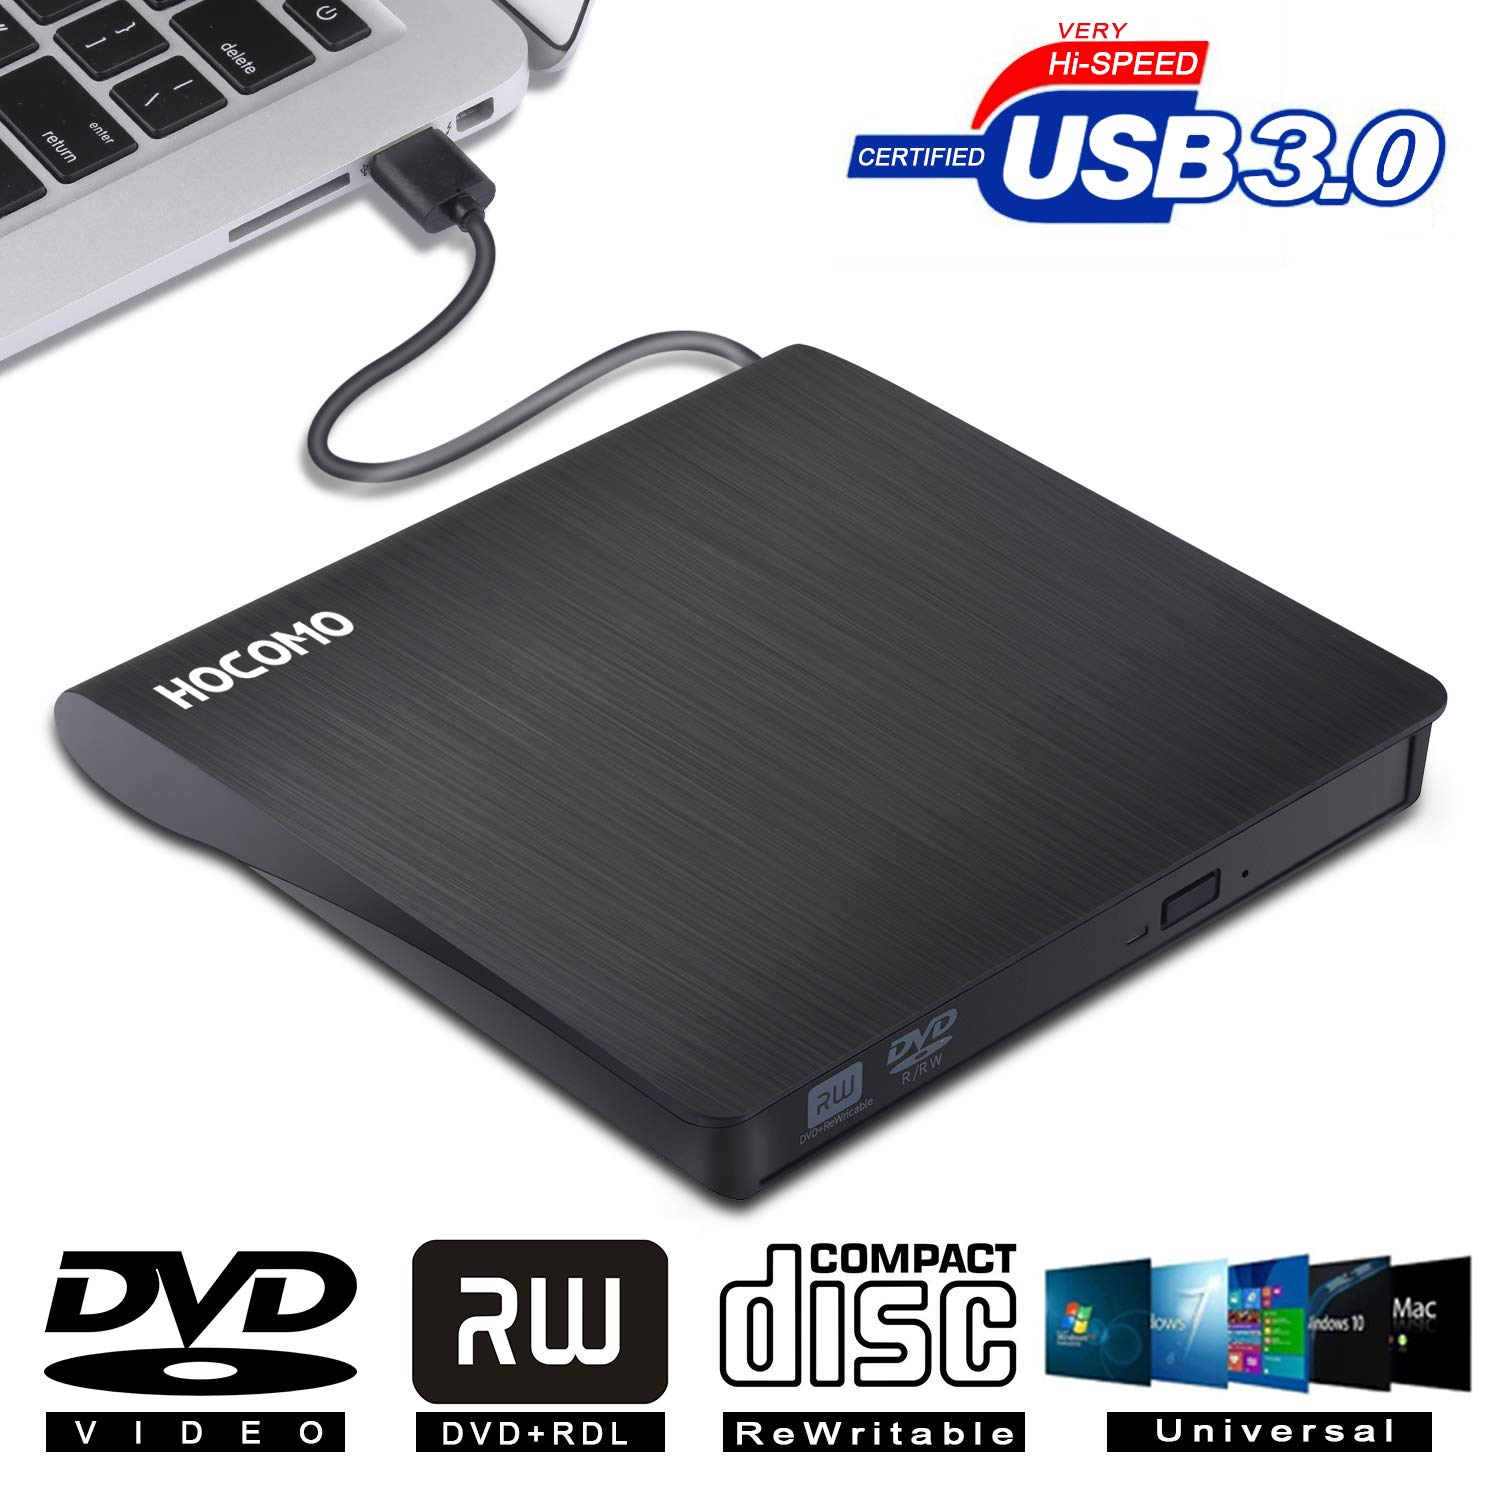 External DVD Drive for Laptop - USB 3.0 Portable Slim Burner Suitable for Compact Disc CD-R/DVD+R/DVD-R/DVD+R DL and Rewritable Disc CD-RW/DVD-RW/DVD+RW(Black) by HOCOMO (Image #1)